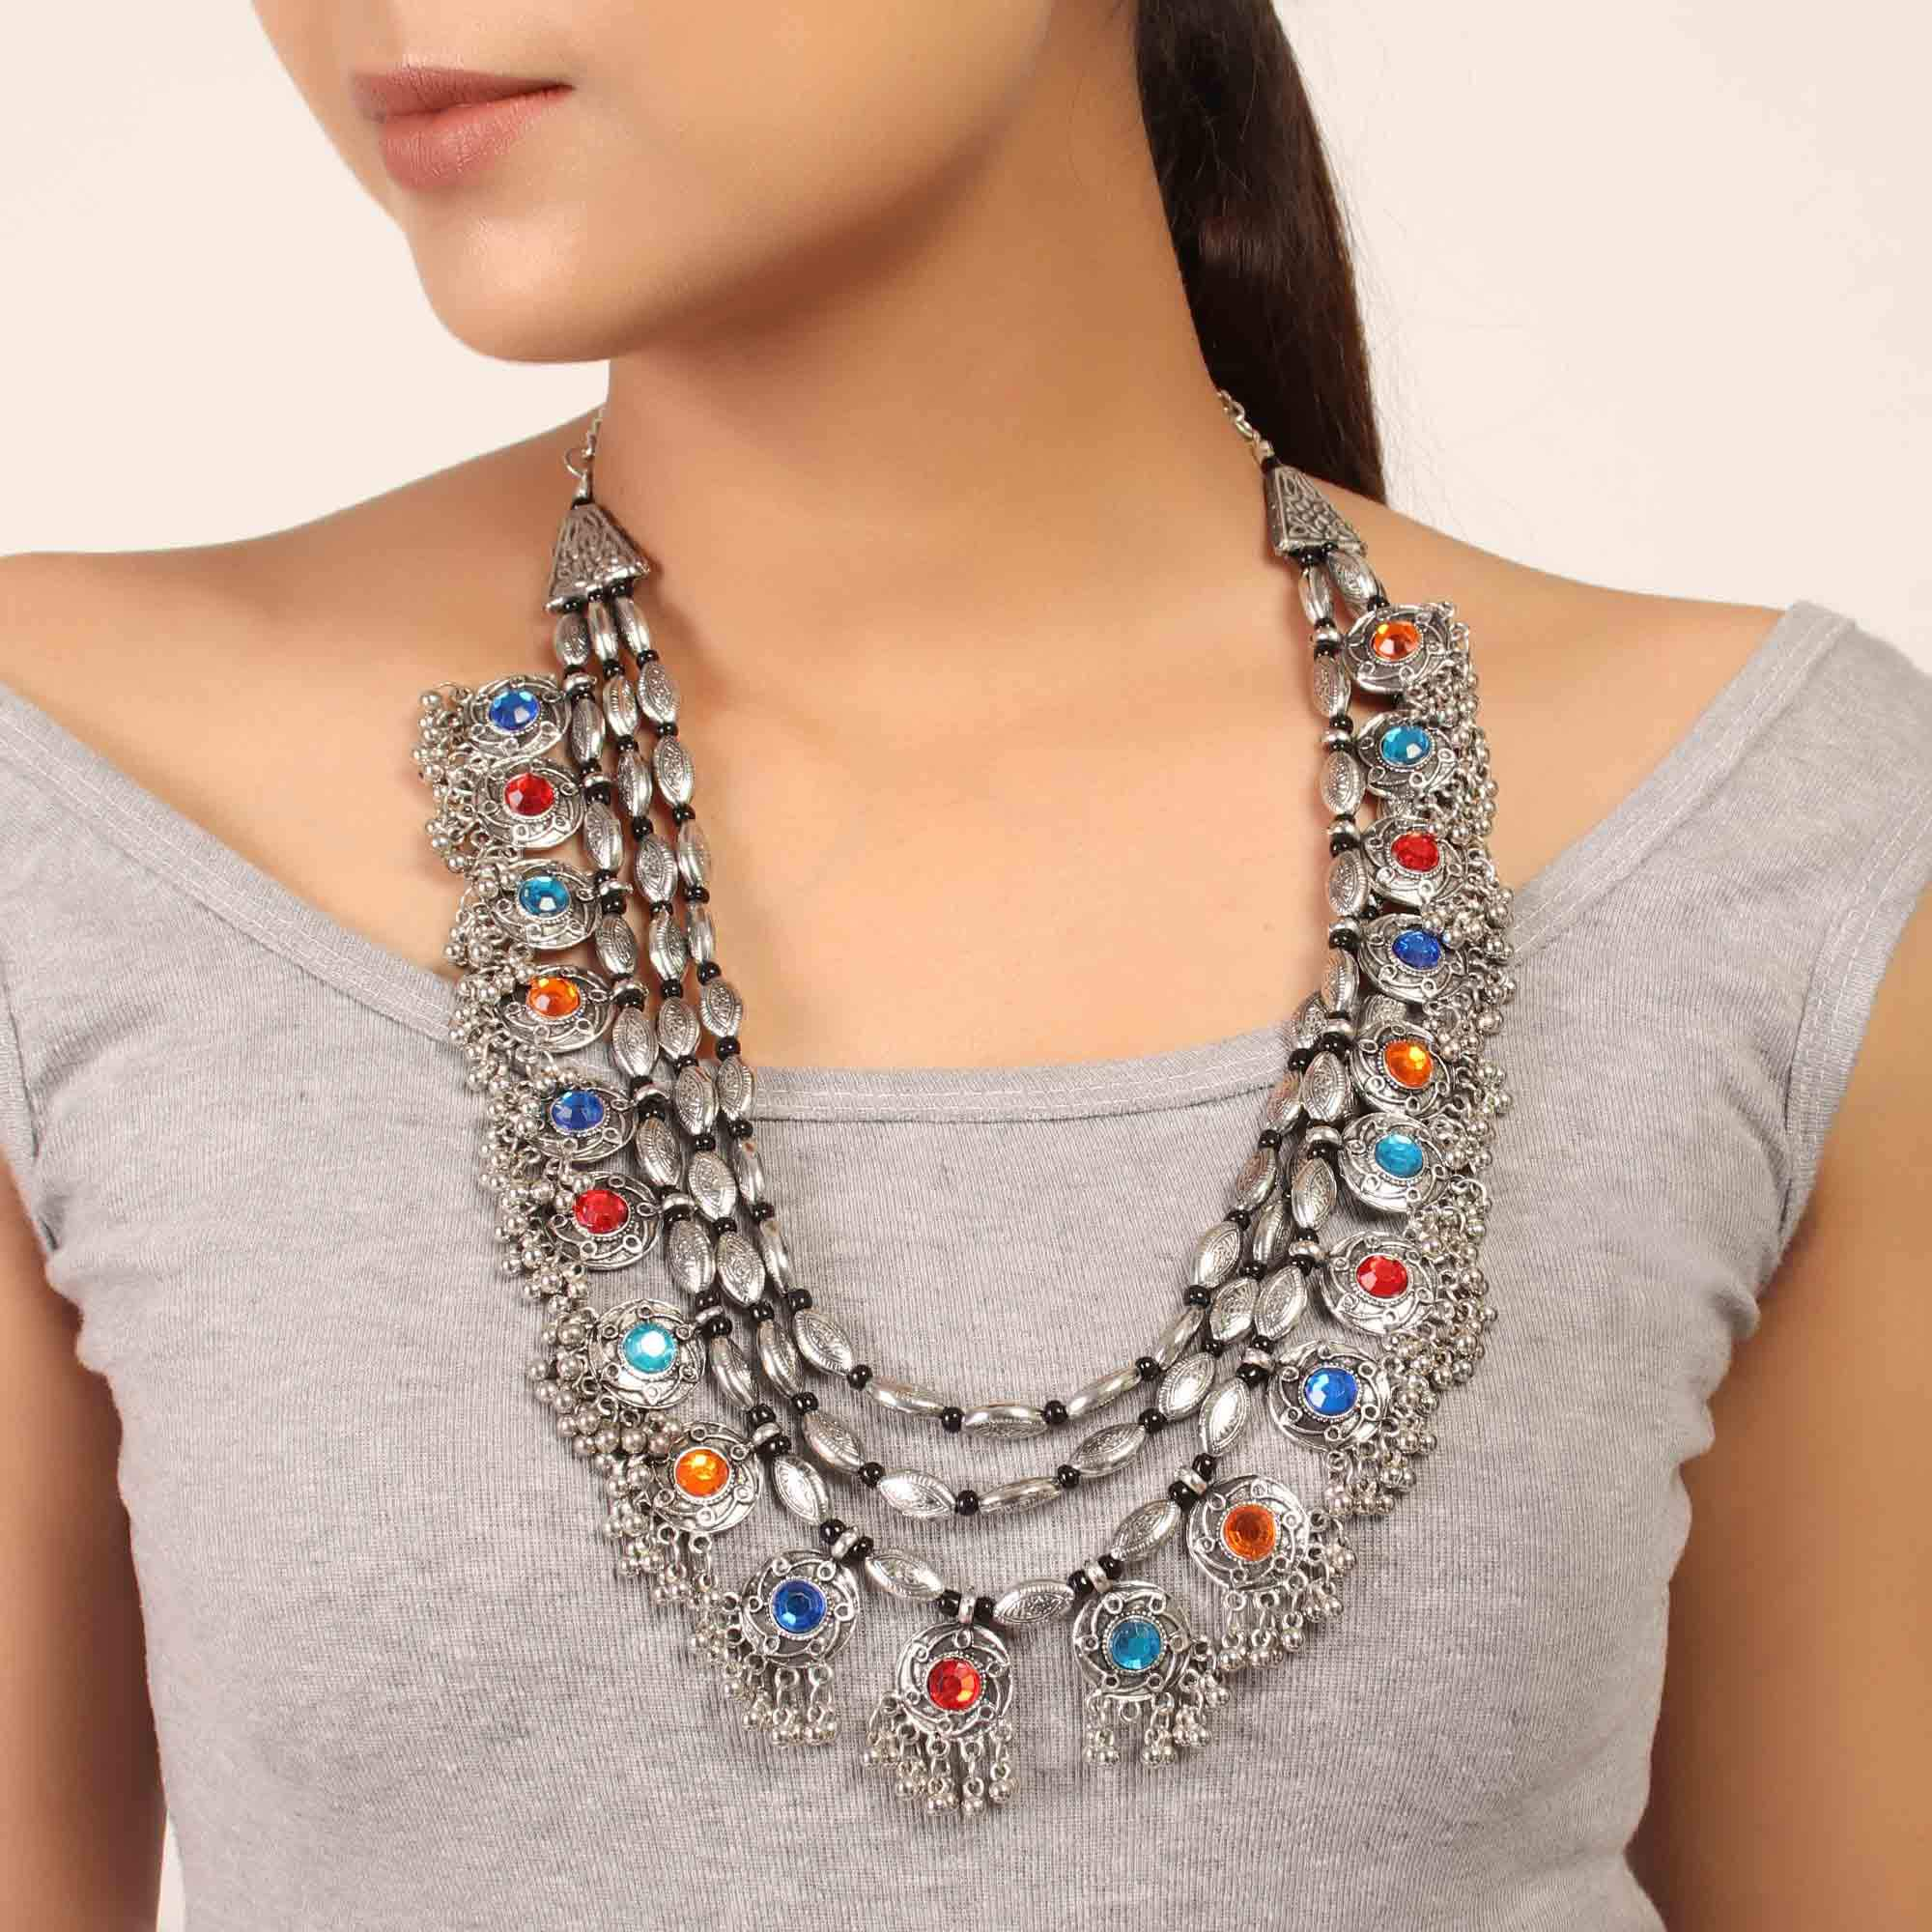 Silver Plated Floral Design Rajwada Necklace with Multicolored Stones Long Necklace By Cippele-Cippele-Necklace